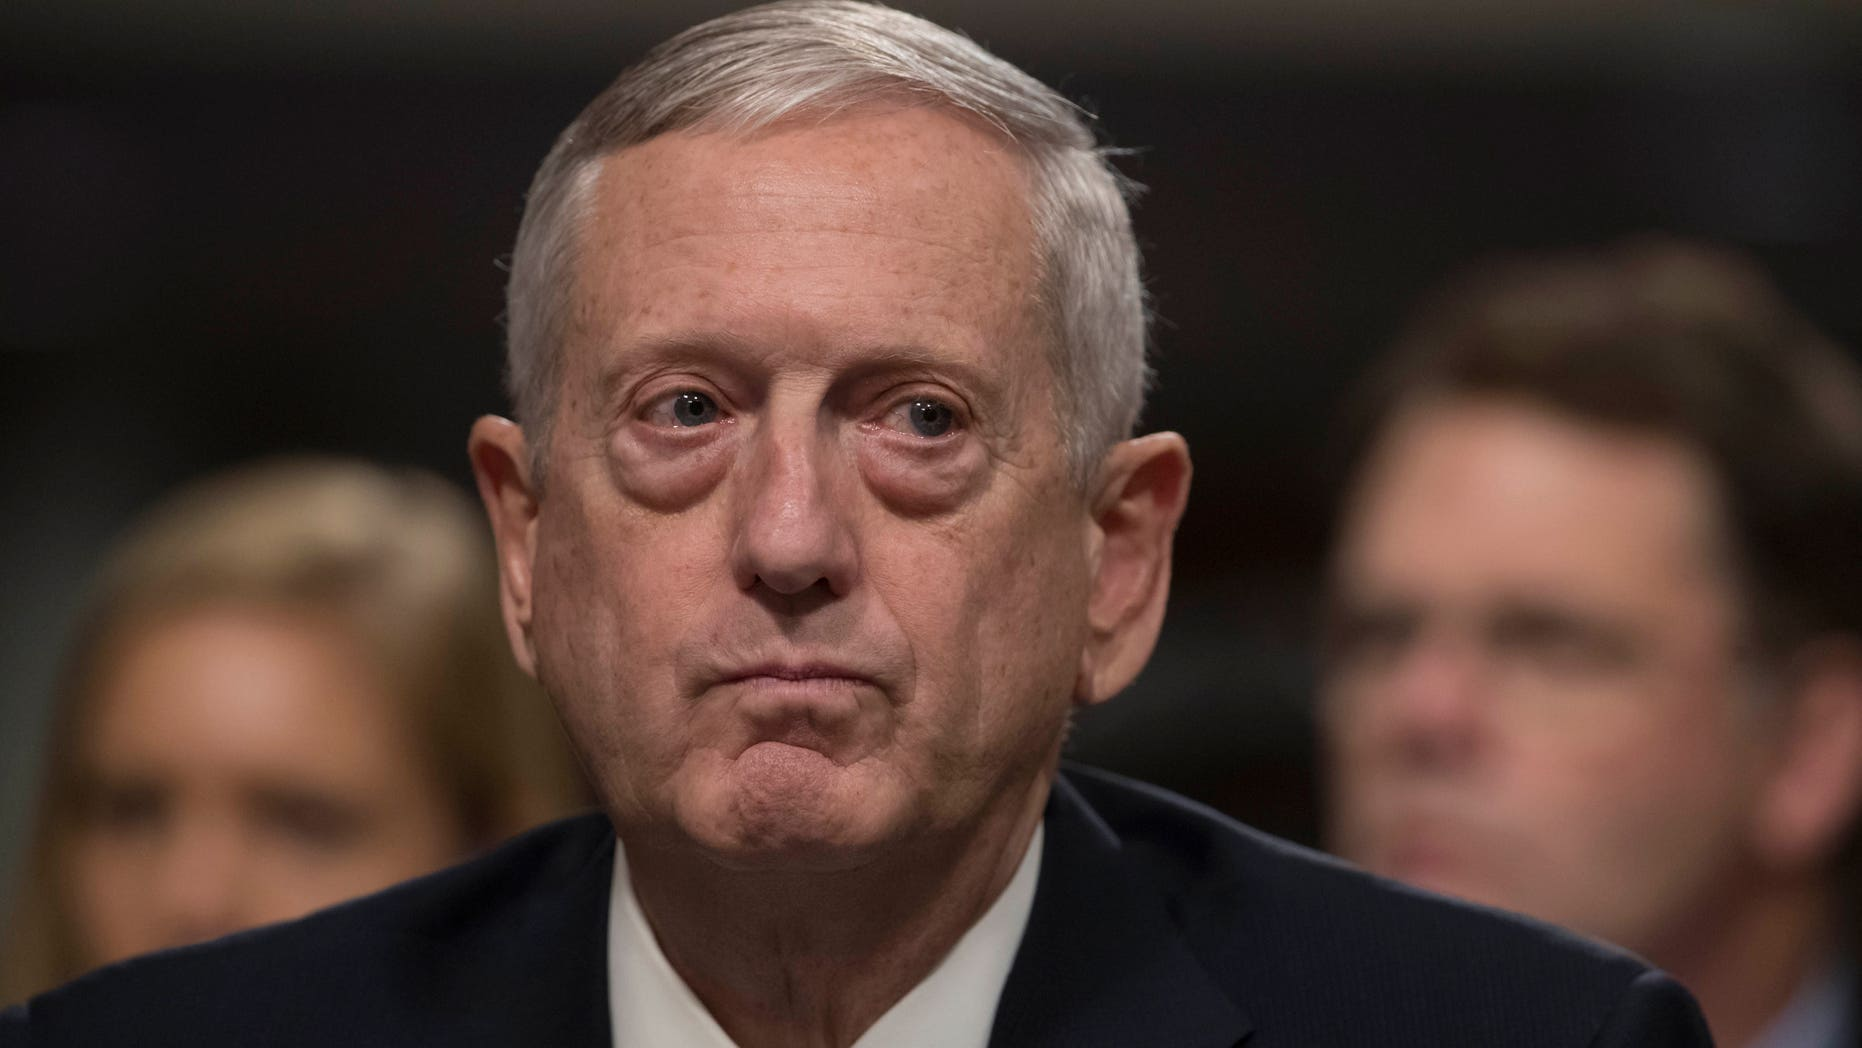 FILE - In this Jan. 12, 2017 file photo, Defense Secretary-designate James Mattis listens on Capitol Hill in Washington while testifying at his confirmation hearing before the Senate Armed Services Committee. Some of President-elect Donald Trump's most important Cabinet choices are at odds with him on matters that were dear to his heart as a campaigner and central to his promises to supporters. For the Pentagon, the CIA, the State Department and more, Trump has picked people who publicly disagree with him on some cornerstones of his agenda In confirmation hearings.  (AP Photo/J. Scott Applewhite, File)